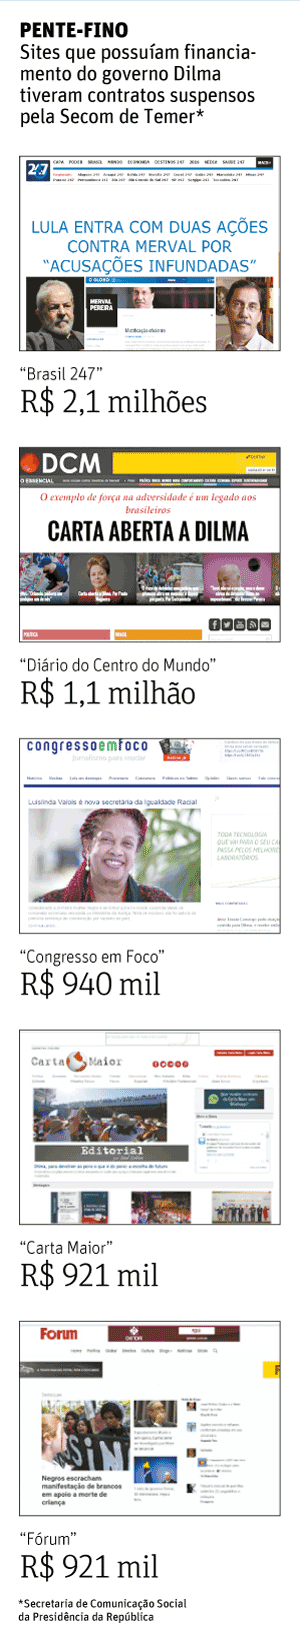 14062016-site-pro-governo